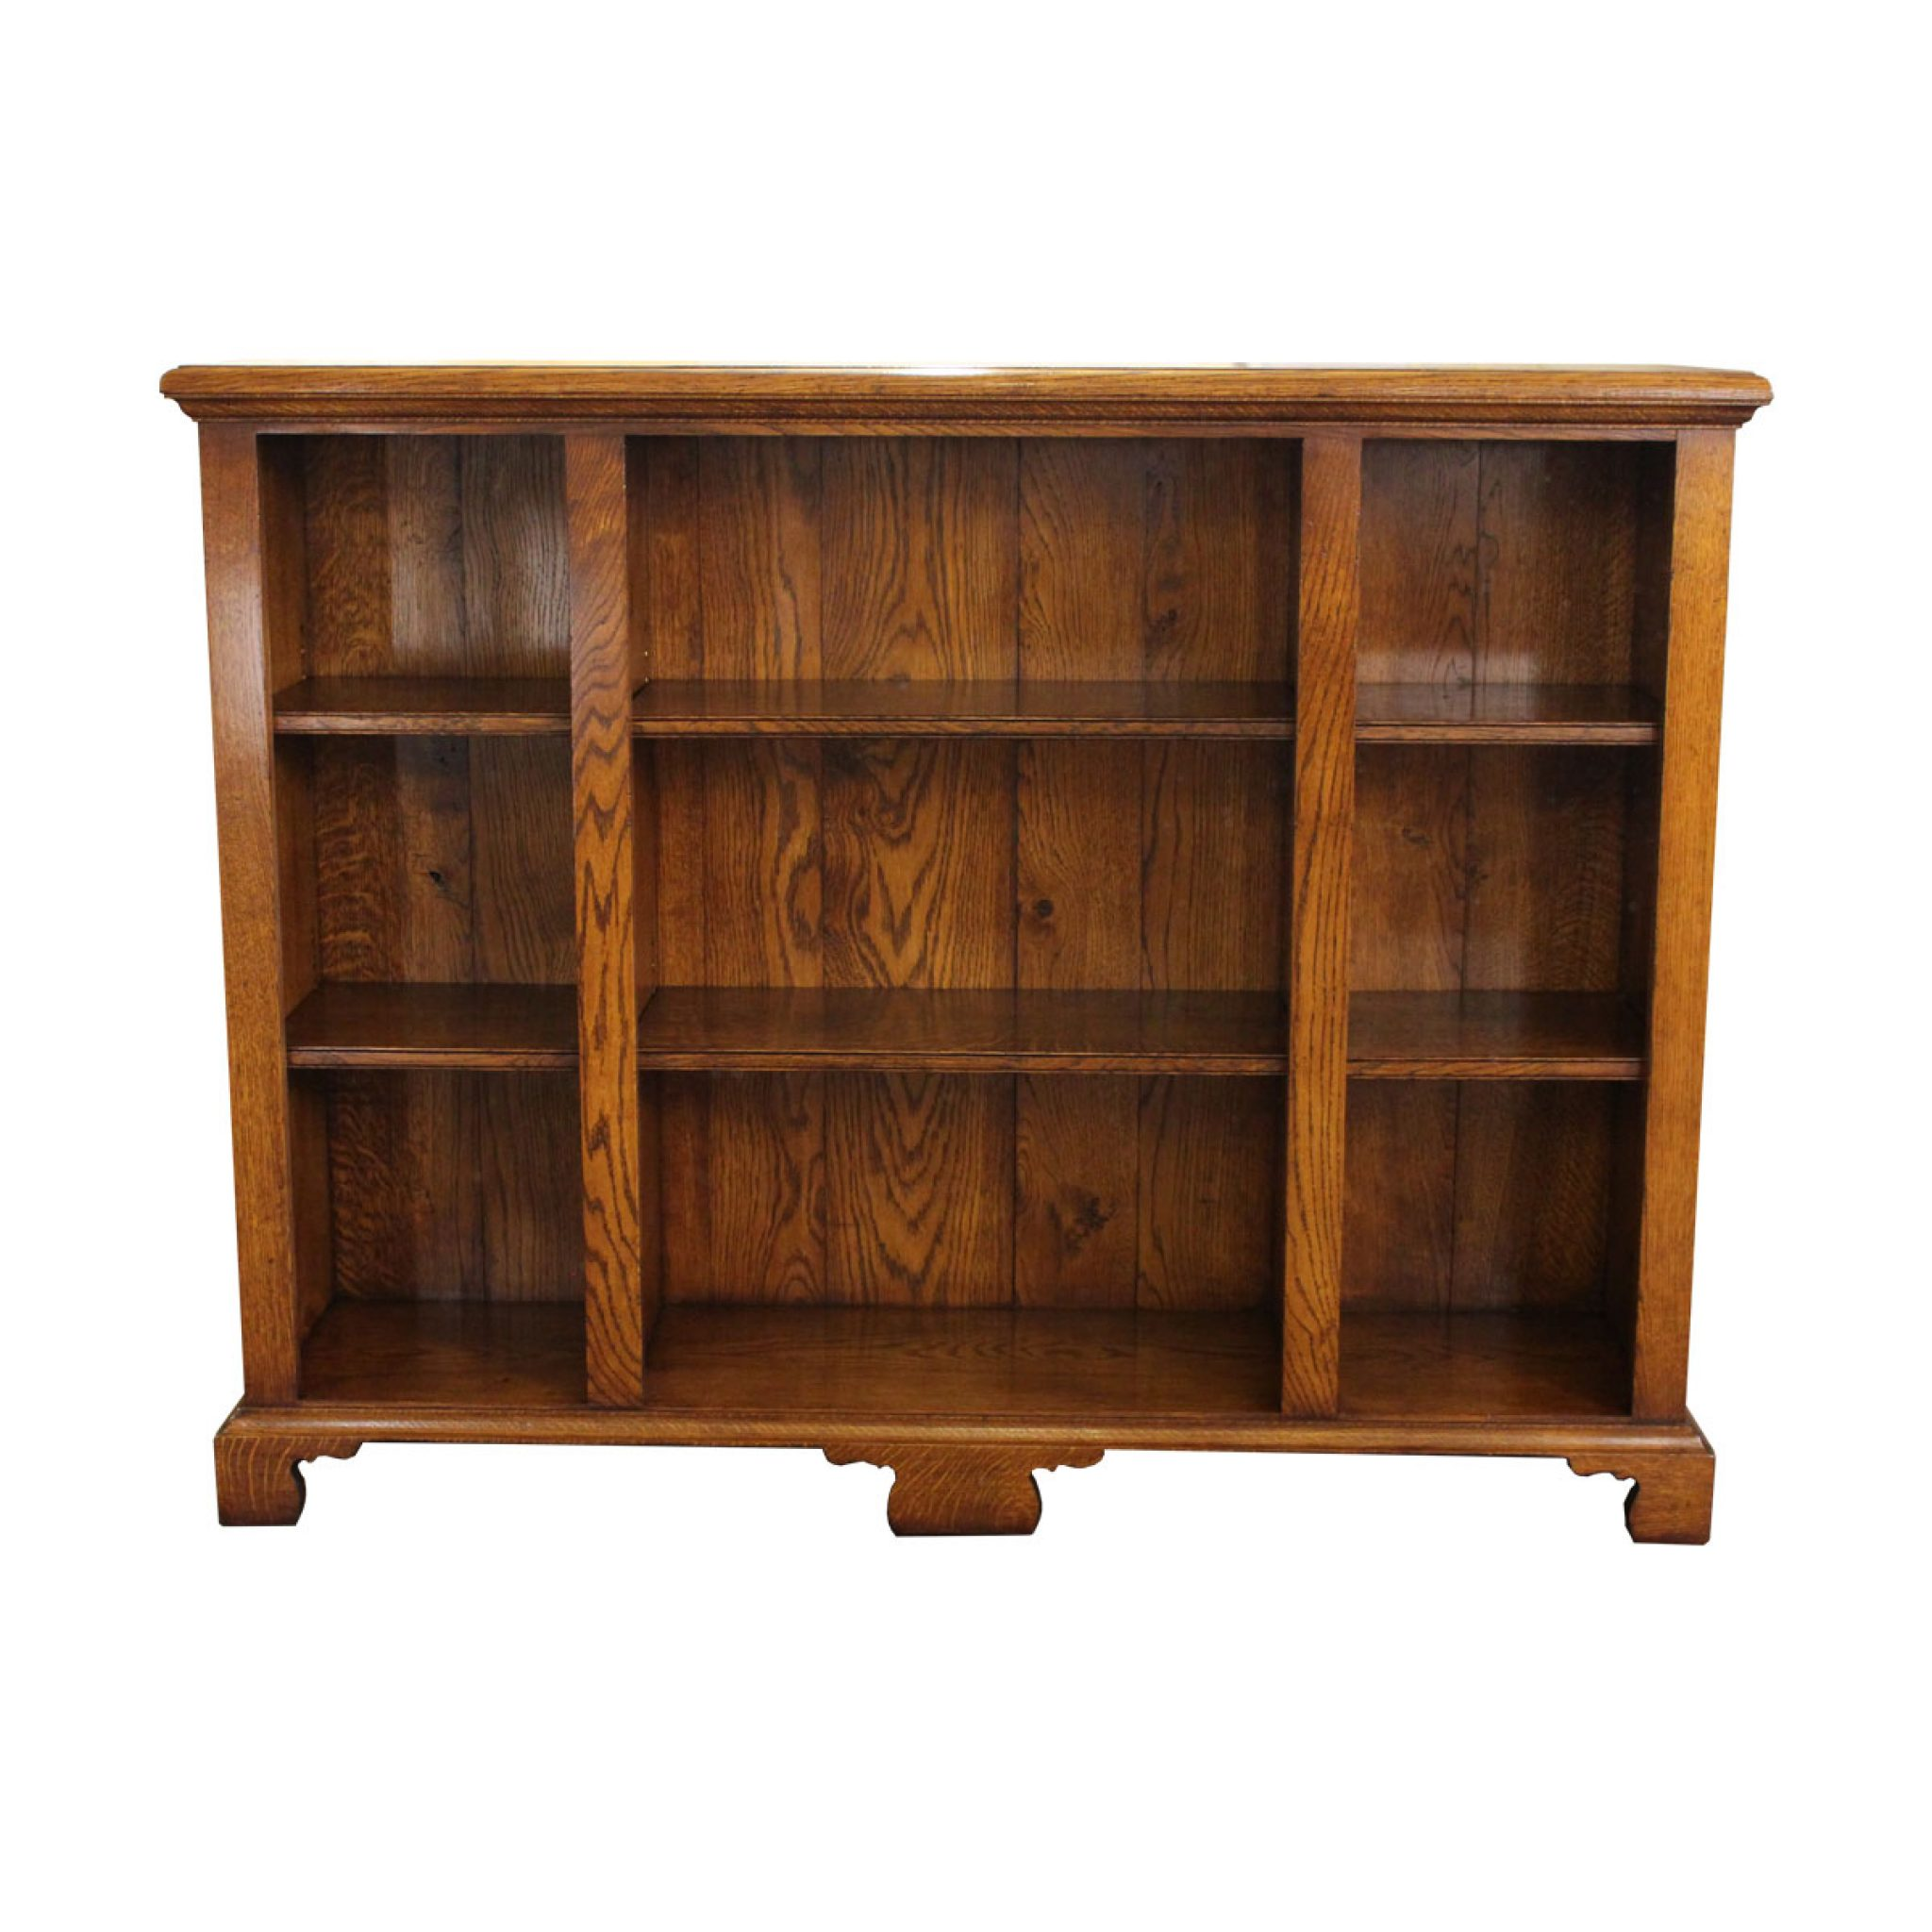 Handmade Oak Furniture Wigton